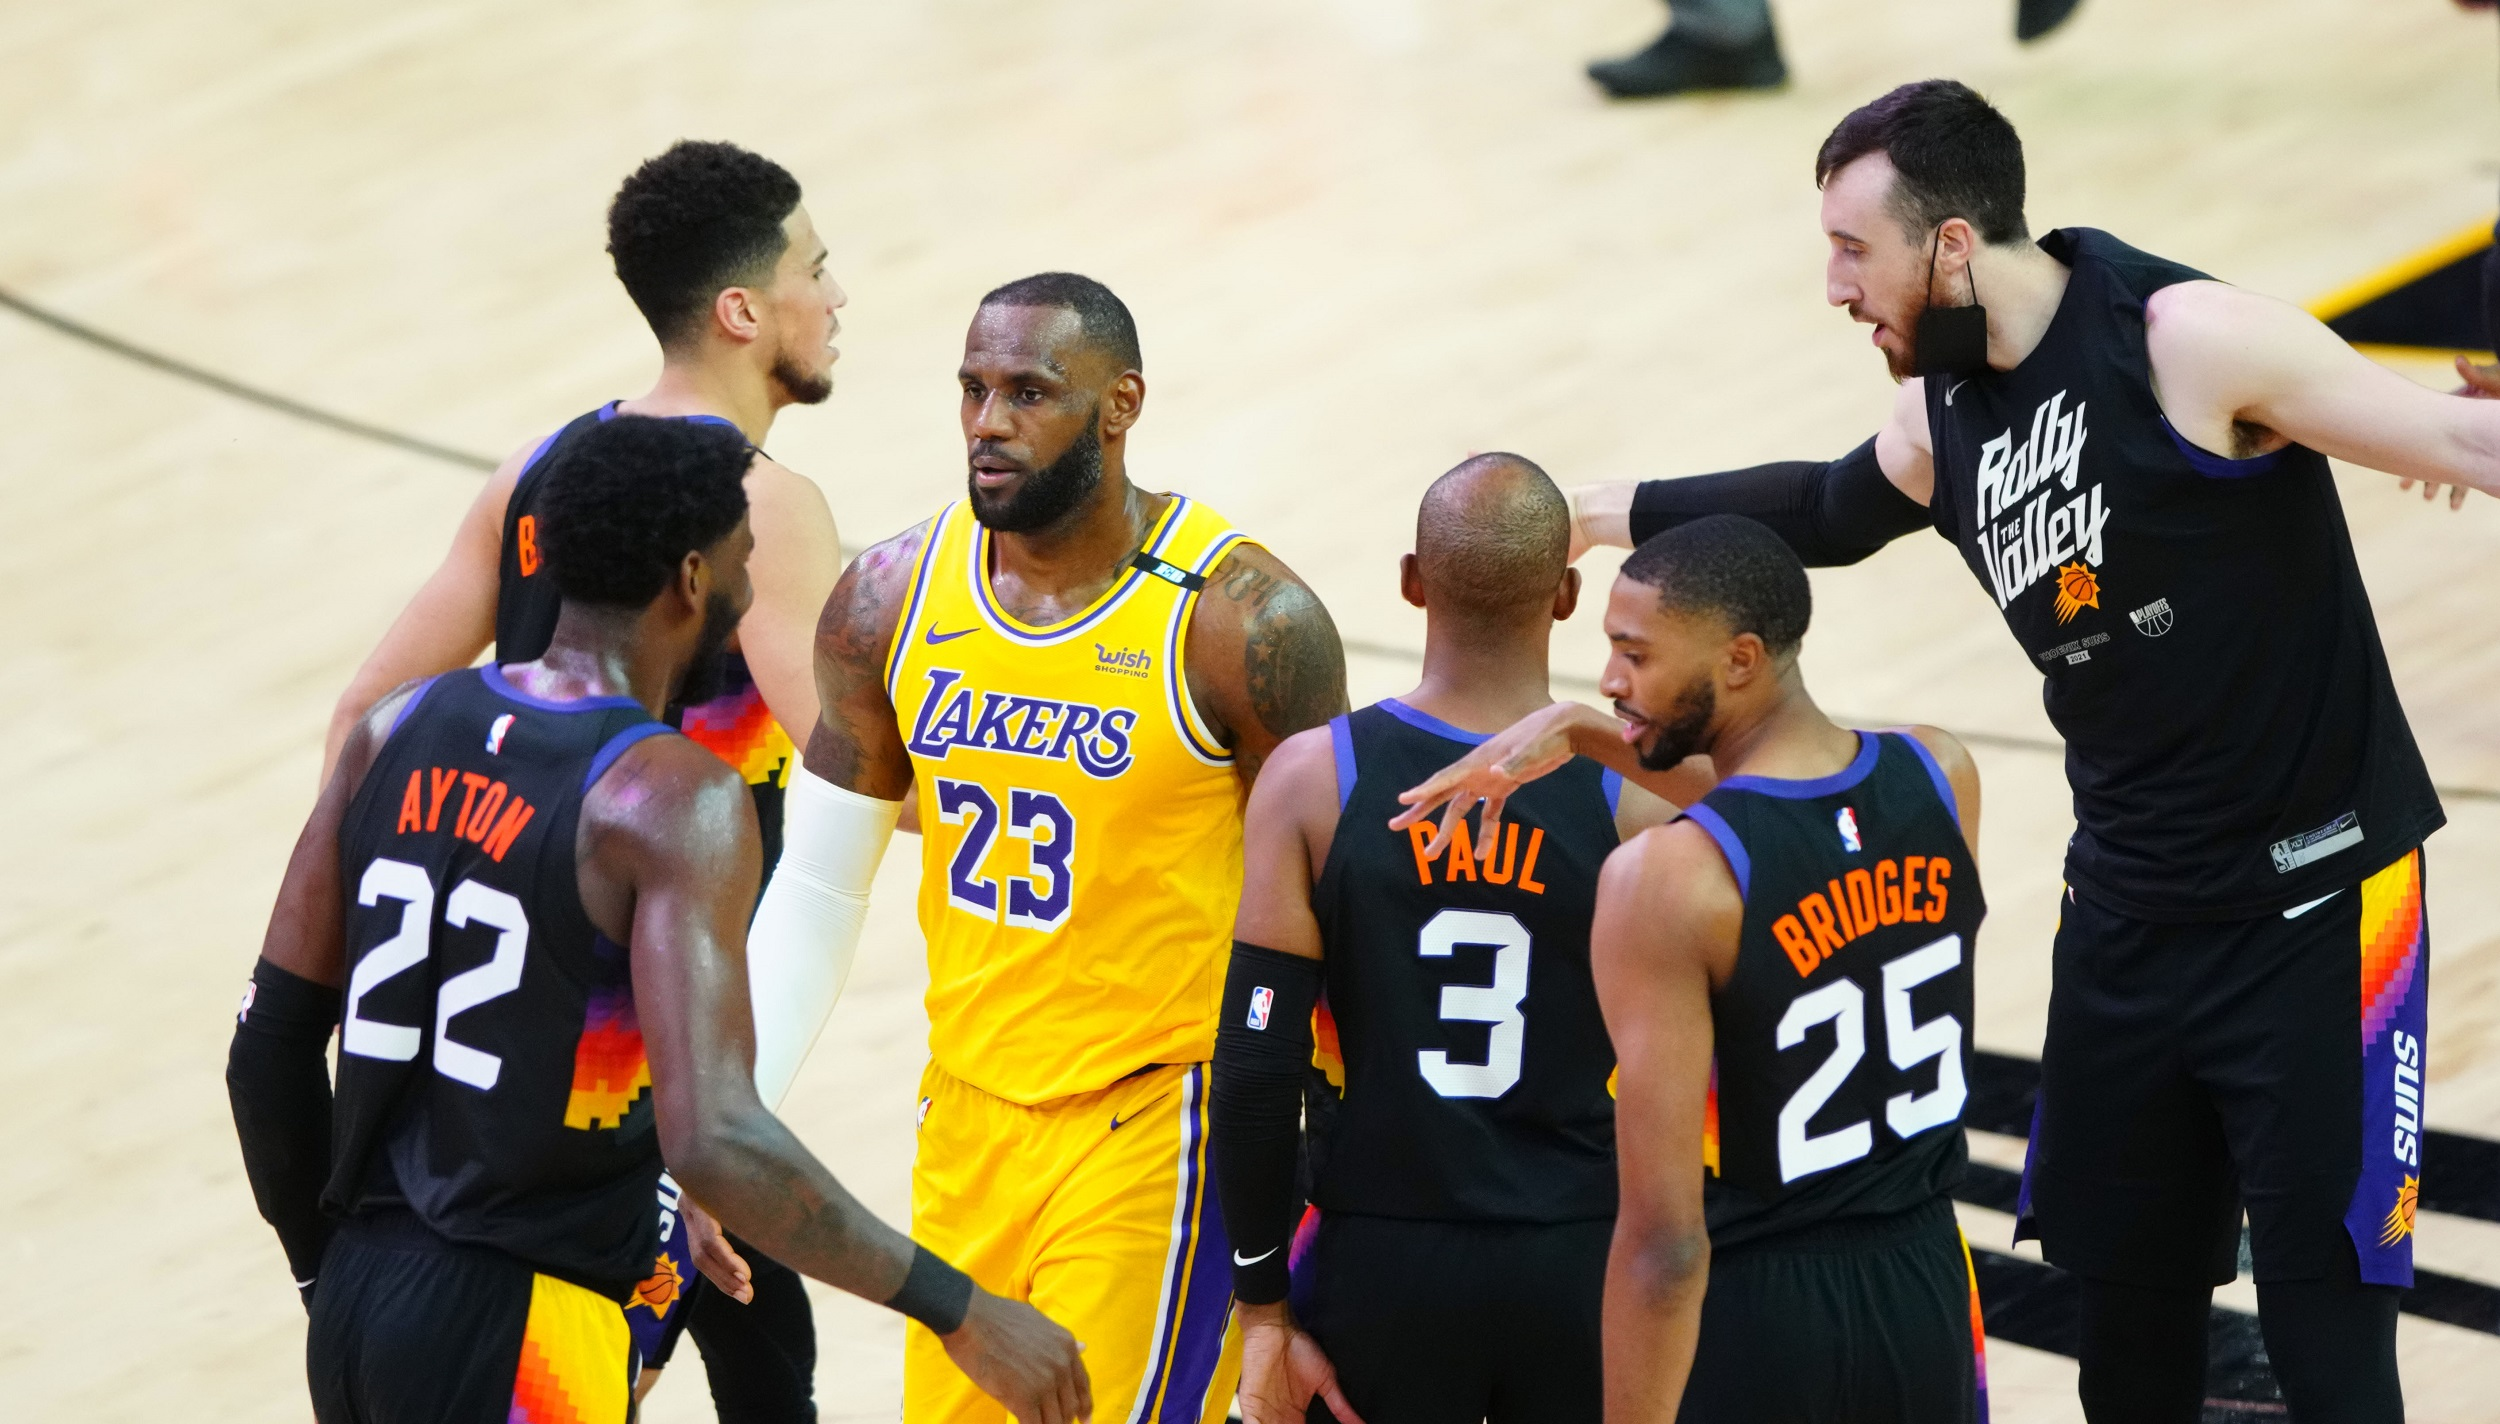 Suns demolish Lakers by 30 for 3-2 advantage